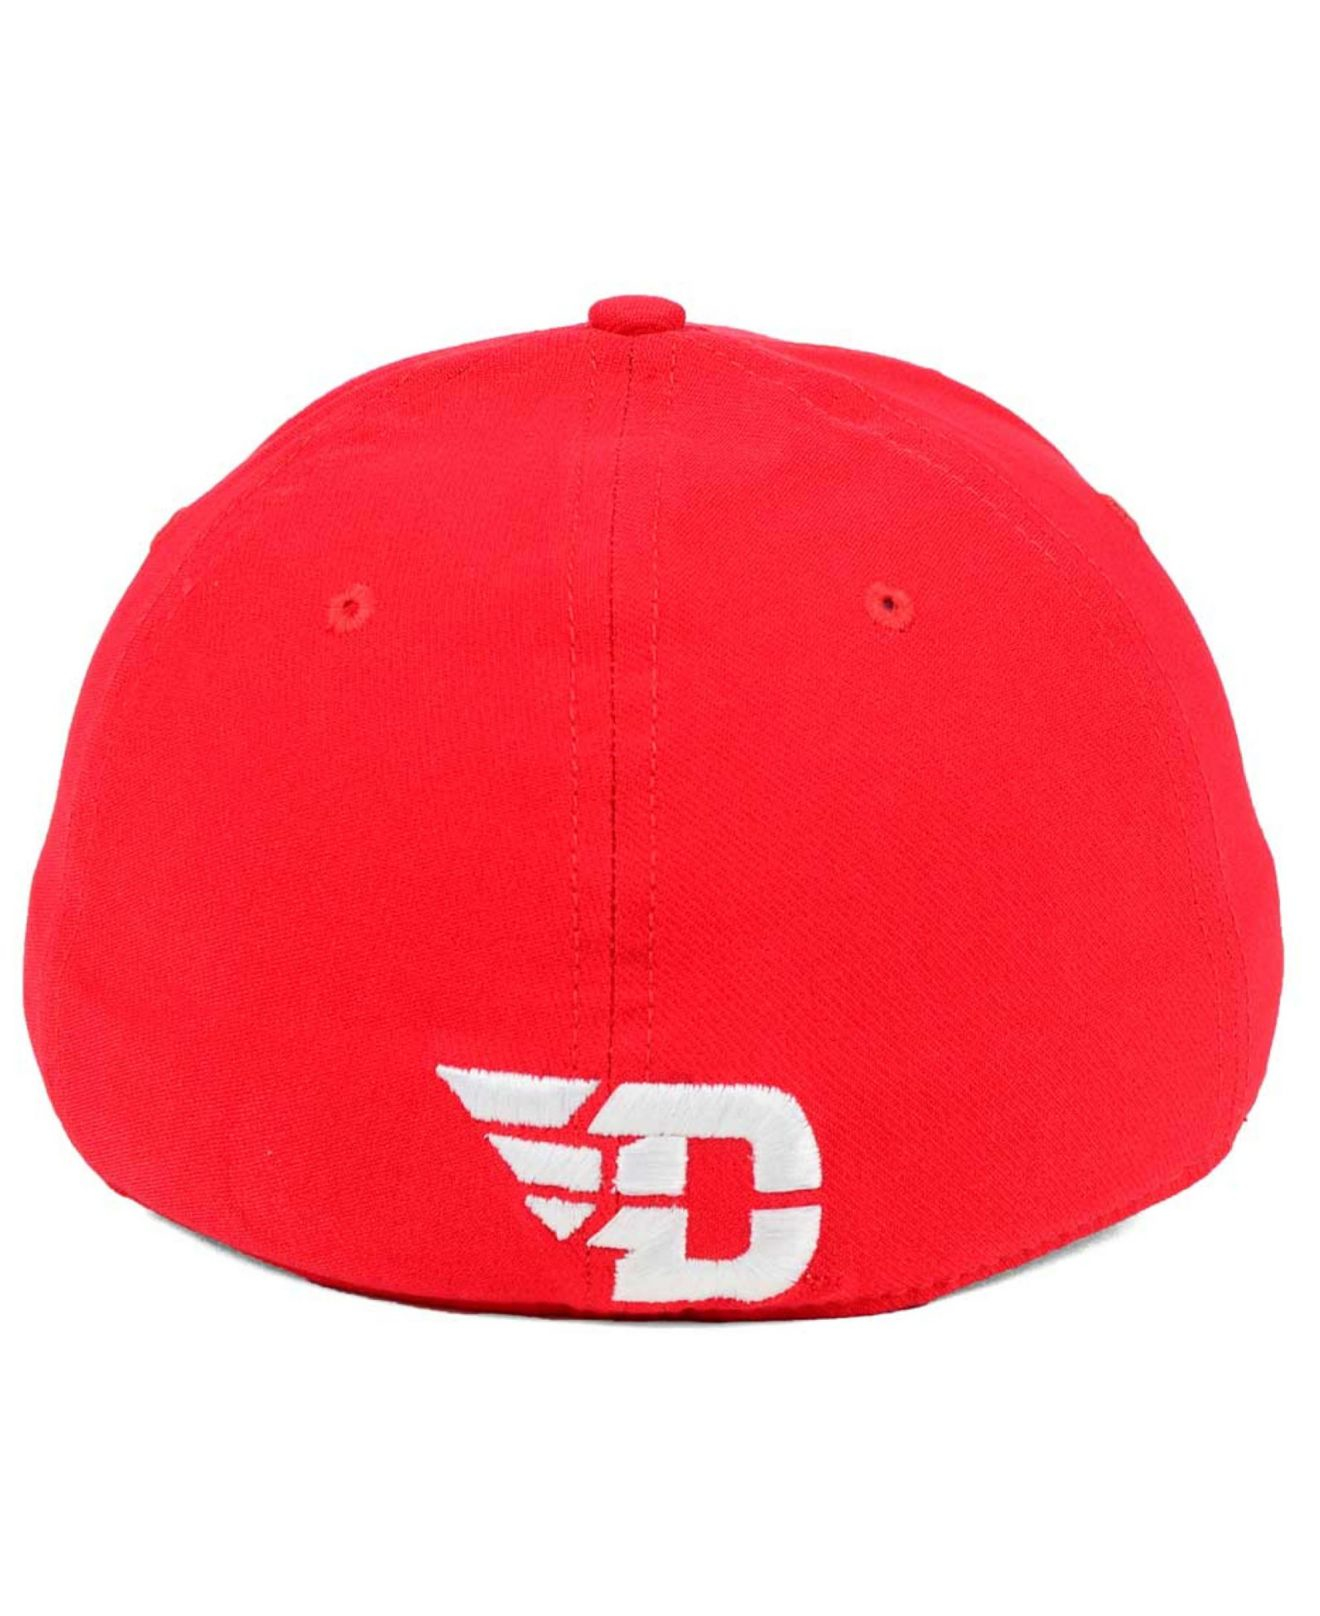 Nike Swoosh Cap Red